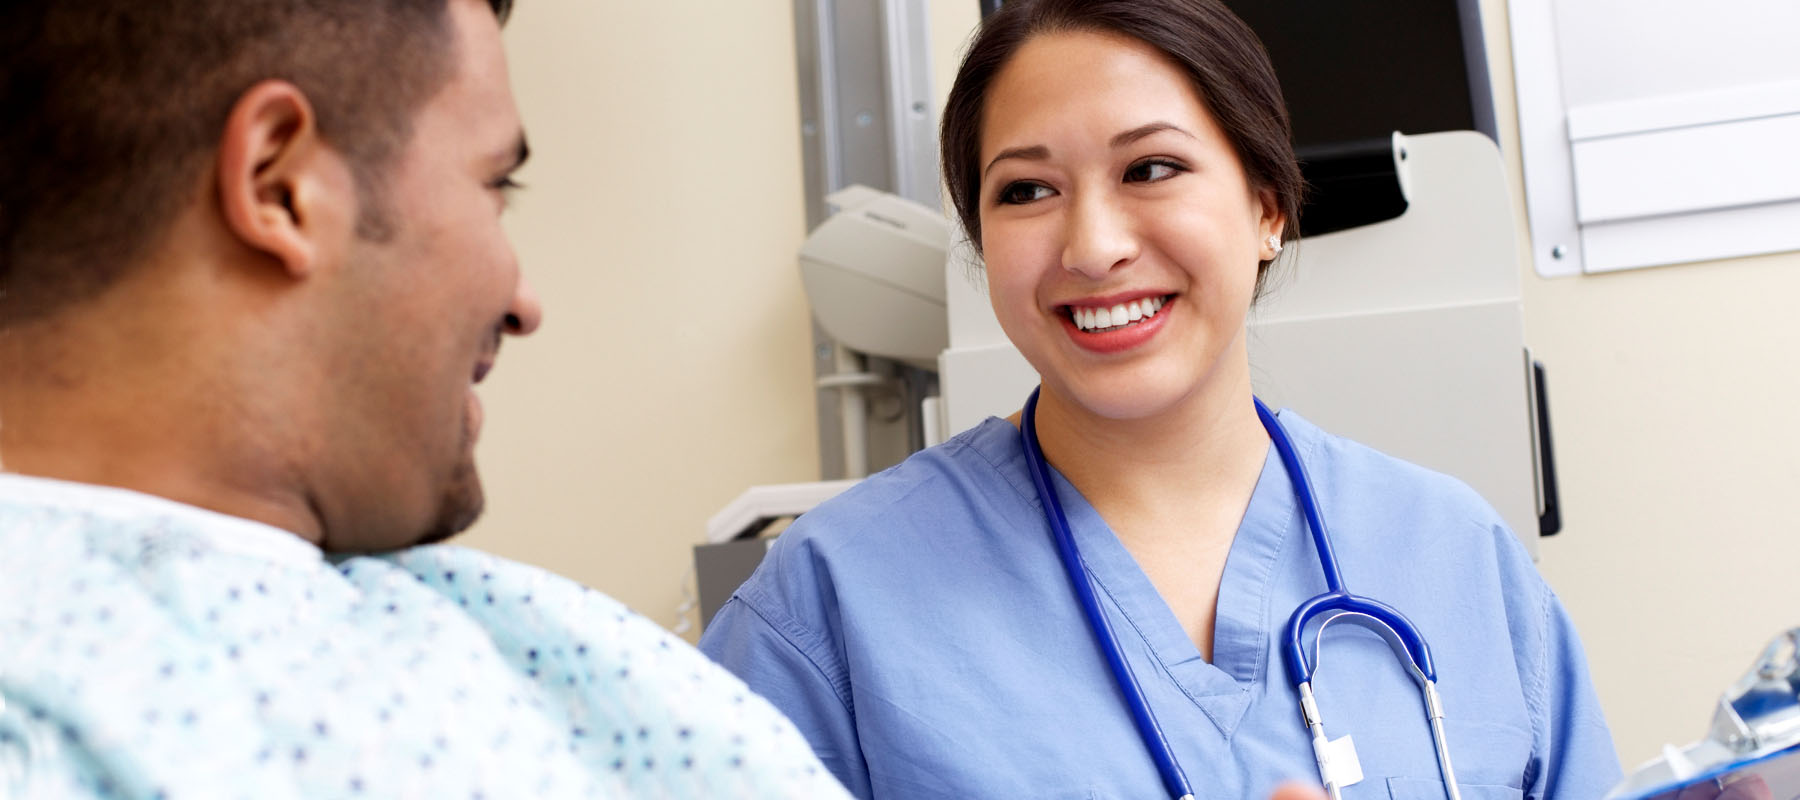 female in blue scrubs speaking with a male patient